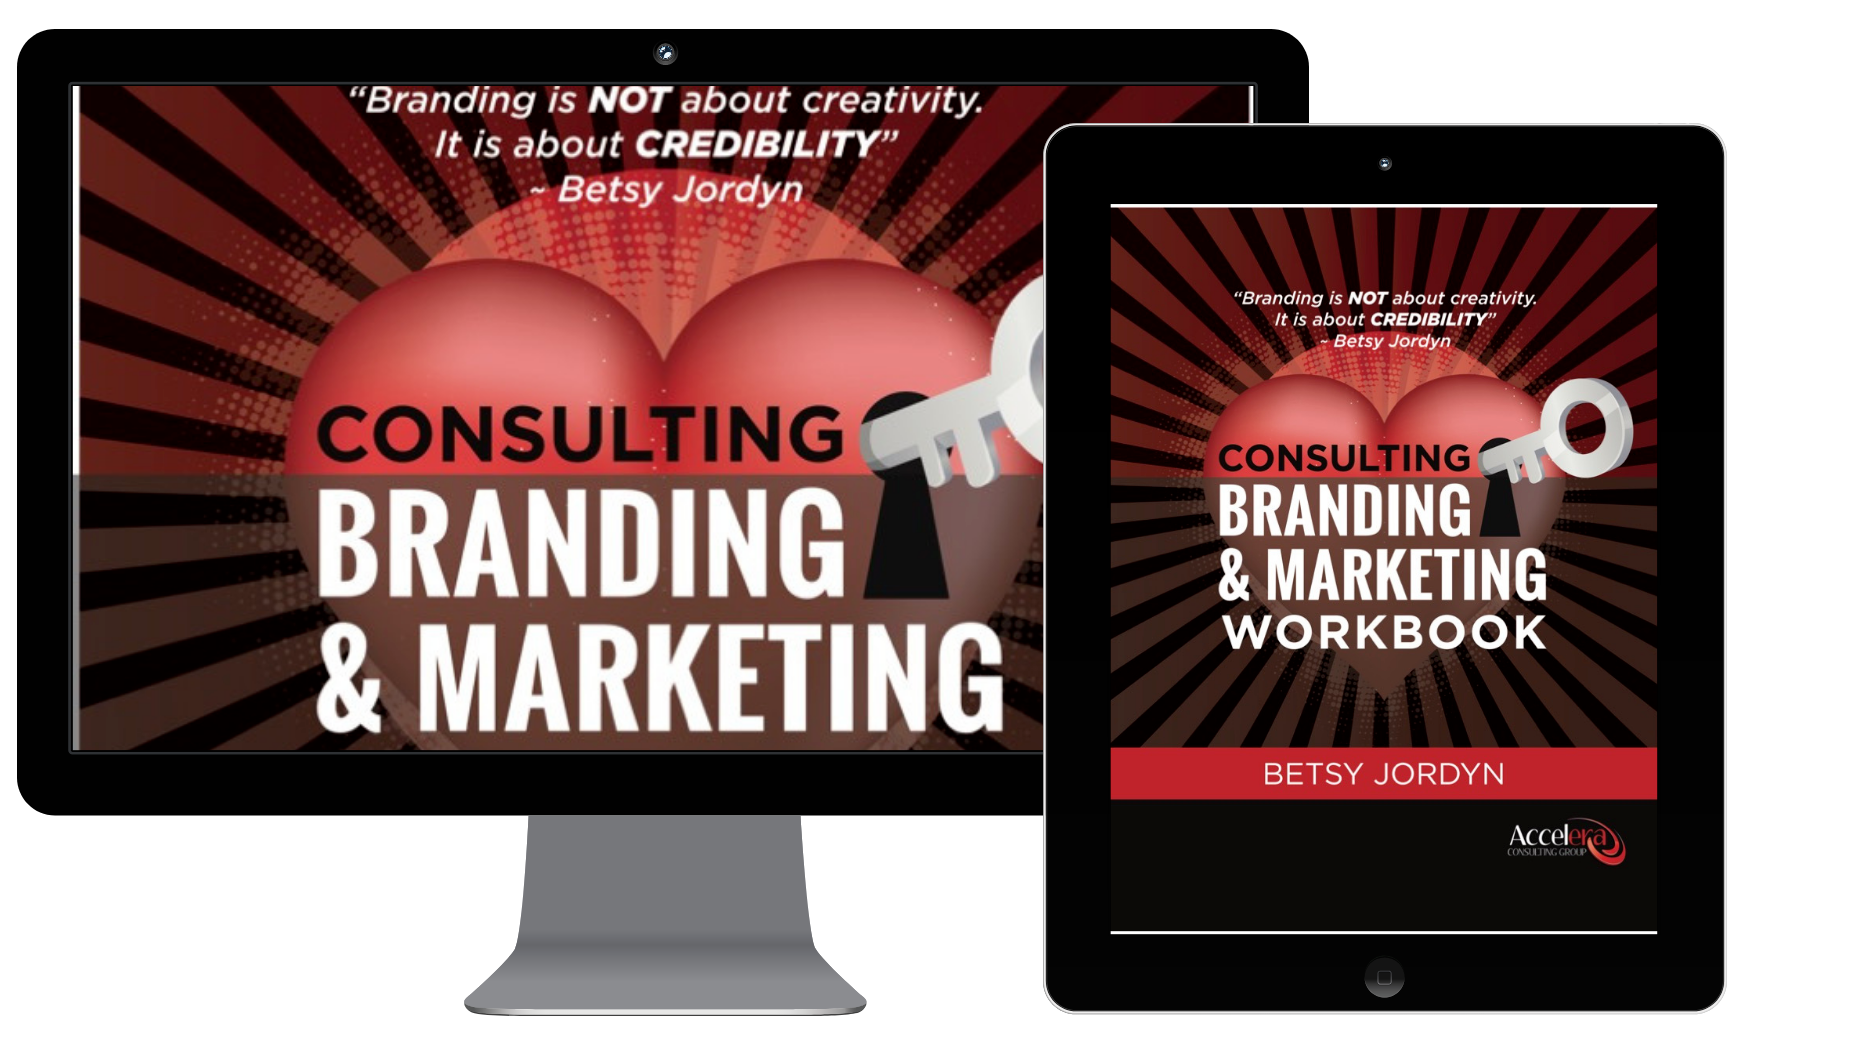 Consulting Branding & Marketing